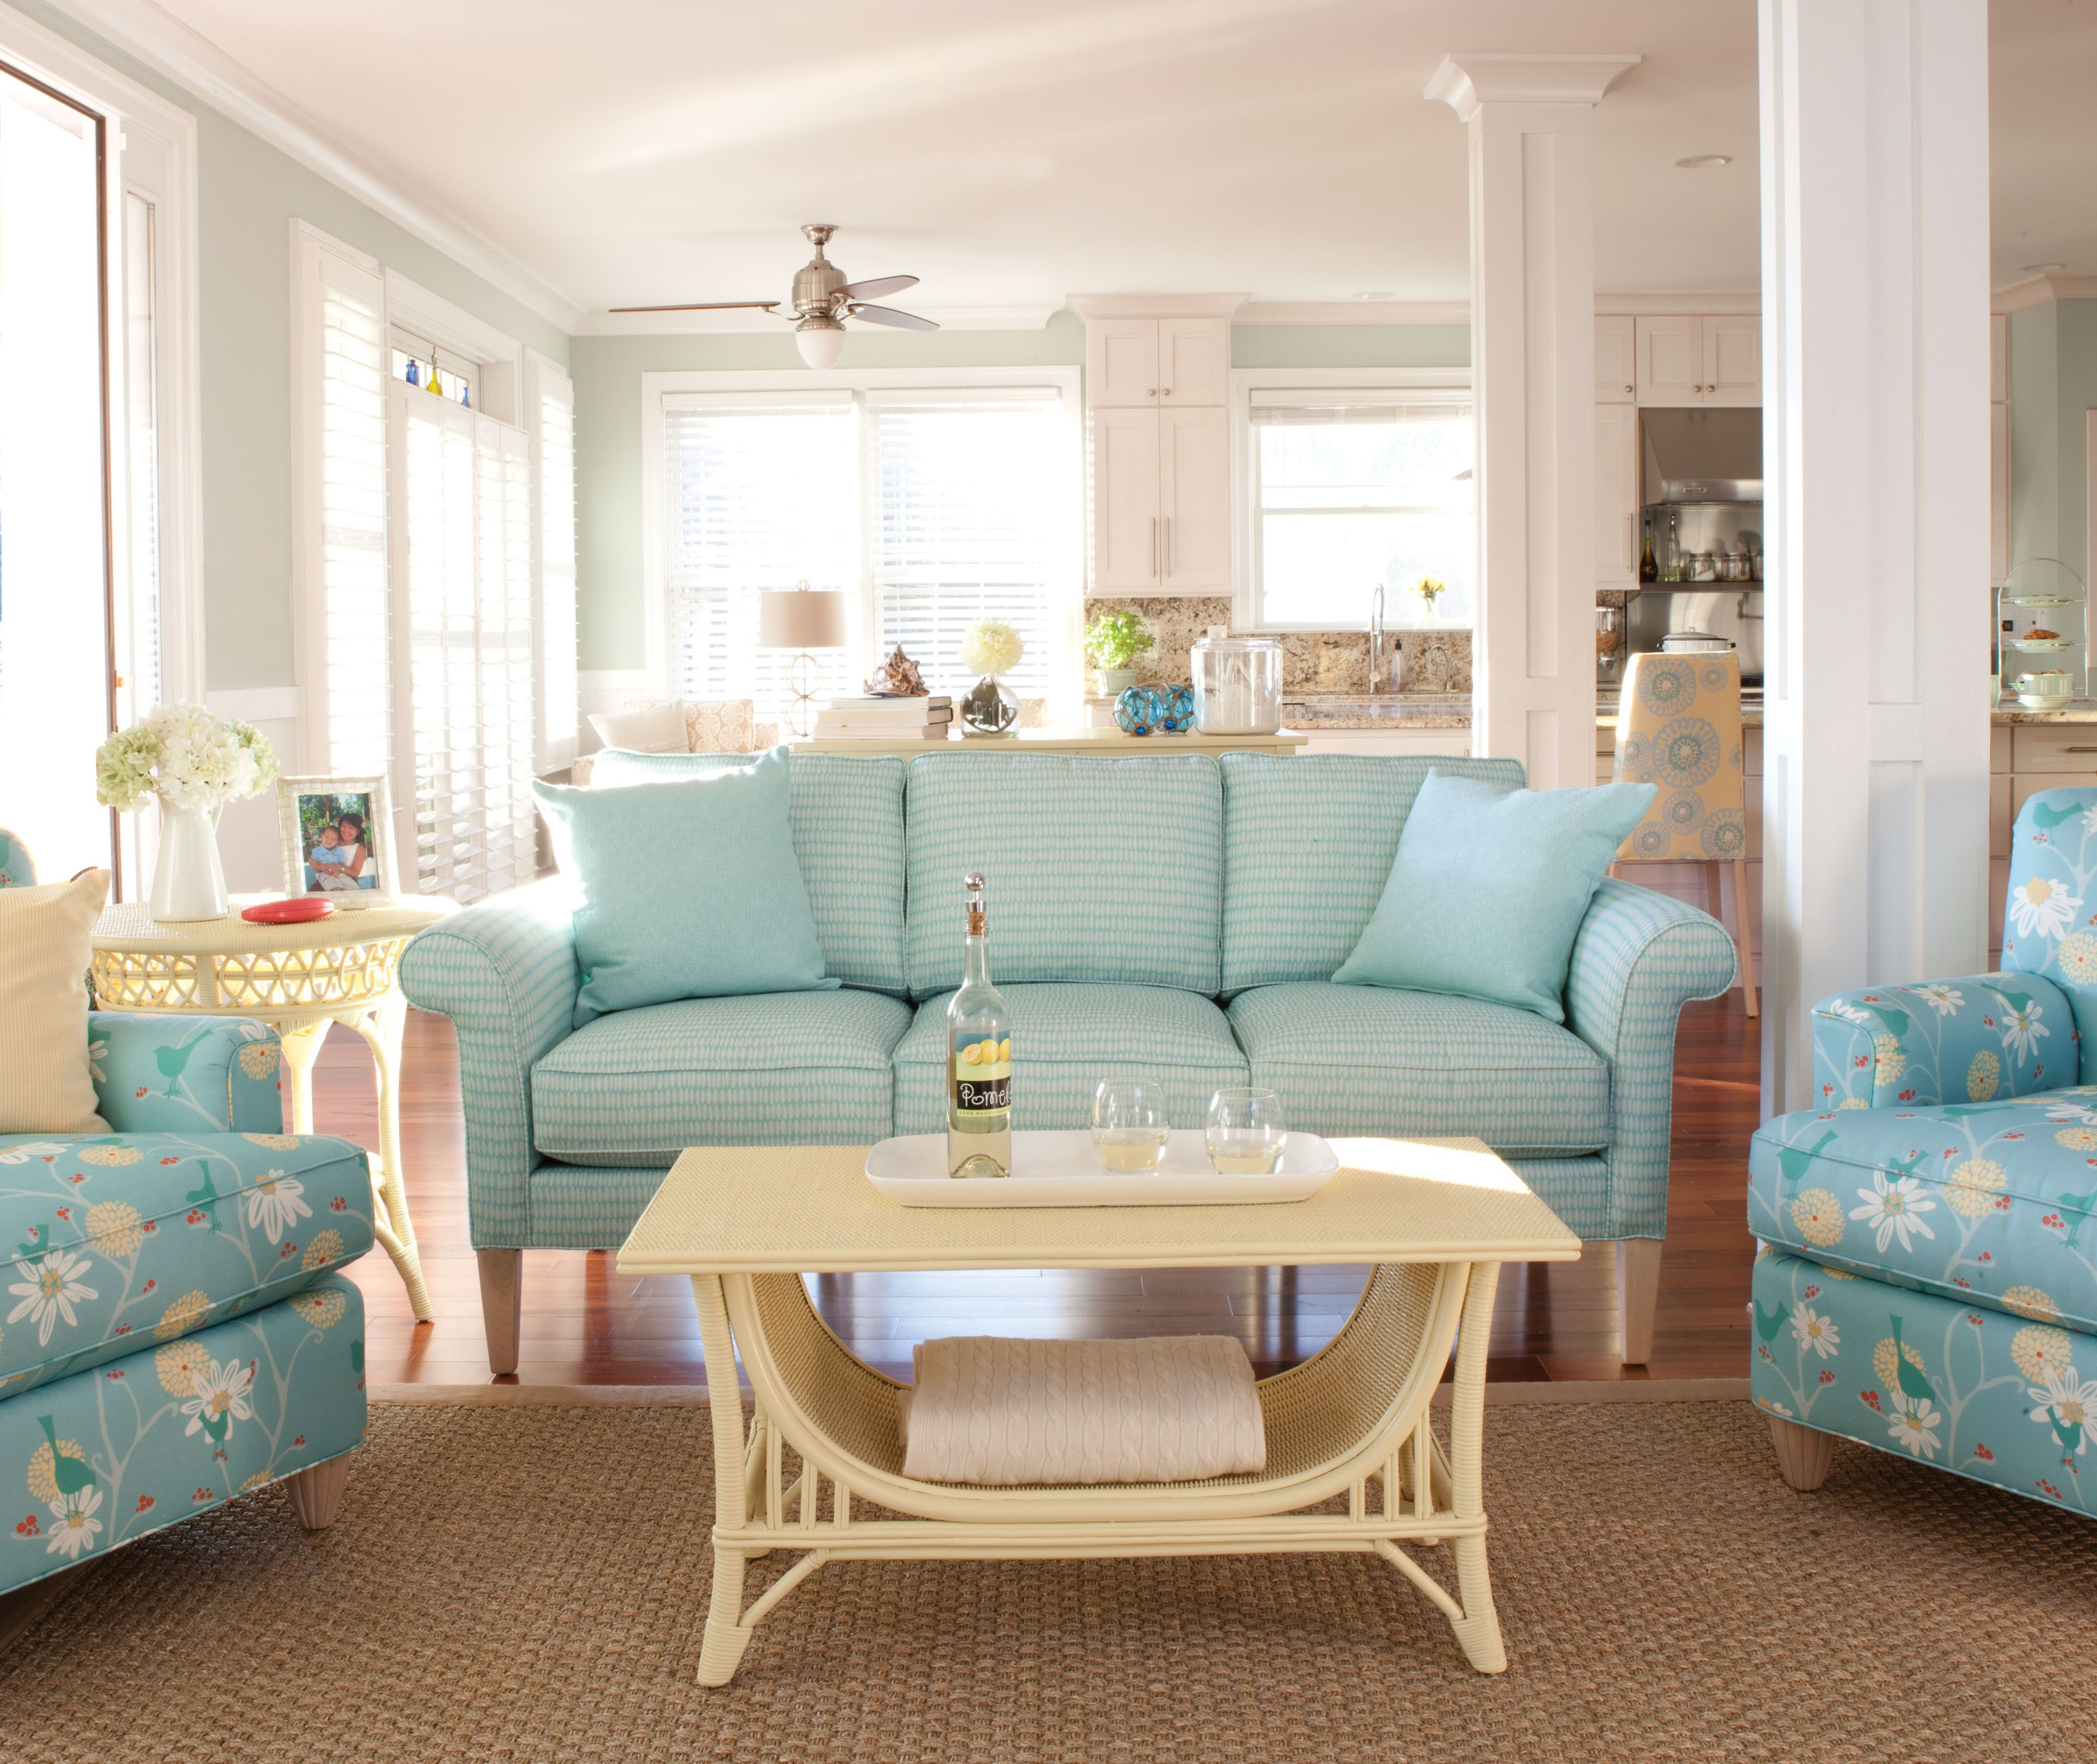 Pale Color On The Walls In The Background Coastal Cottage Living Room Living Room Decor Rustic Blue Sofa Design #rustic #cottage #living #room